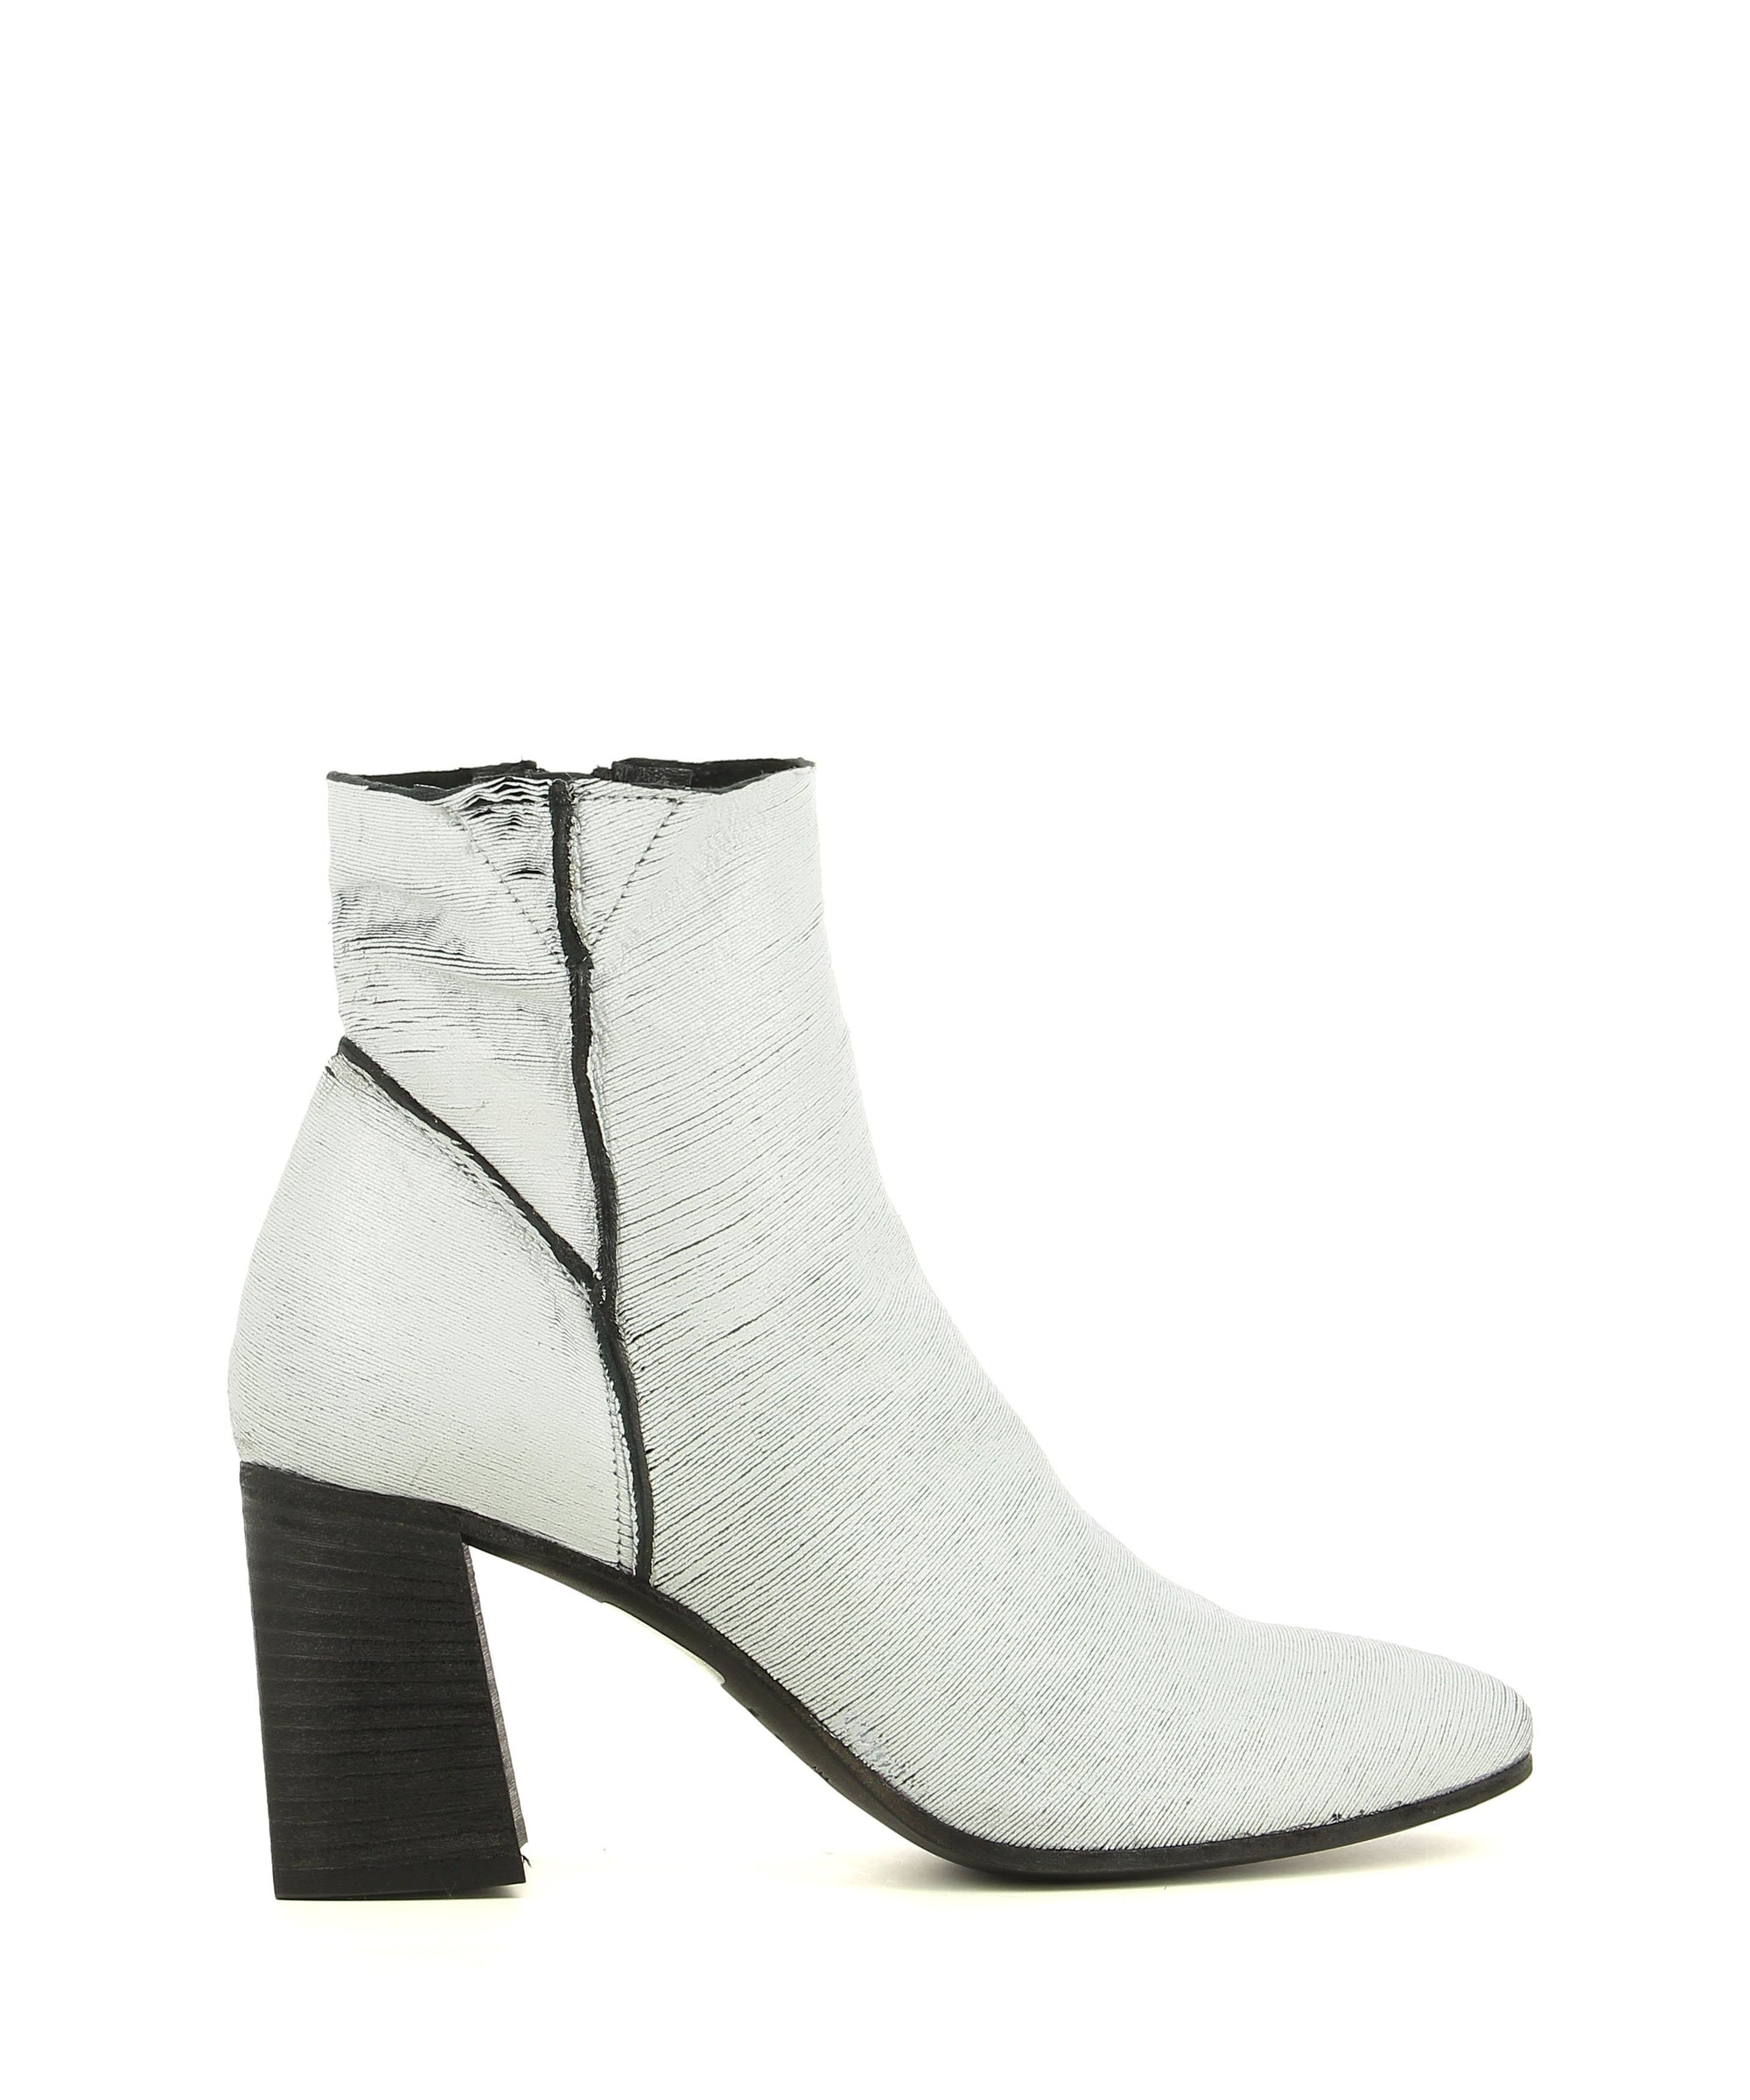 Italian white Italian leather ankle boots that have zipper fastening and features a laser-cut finish to the upper, contrast black seems a black 7.5 cm block heel and an almond toe by Elena Iachi.